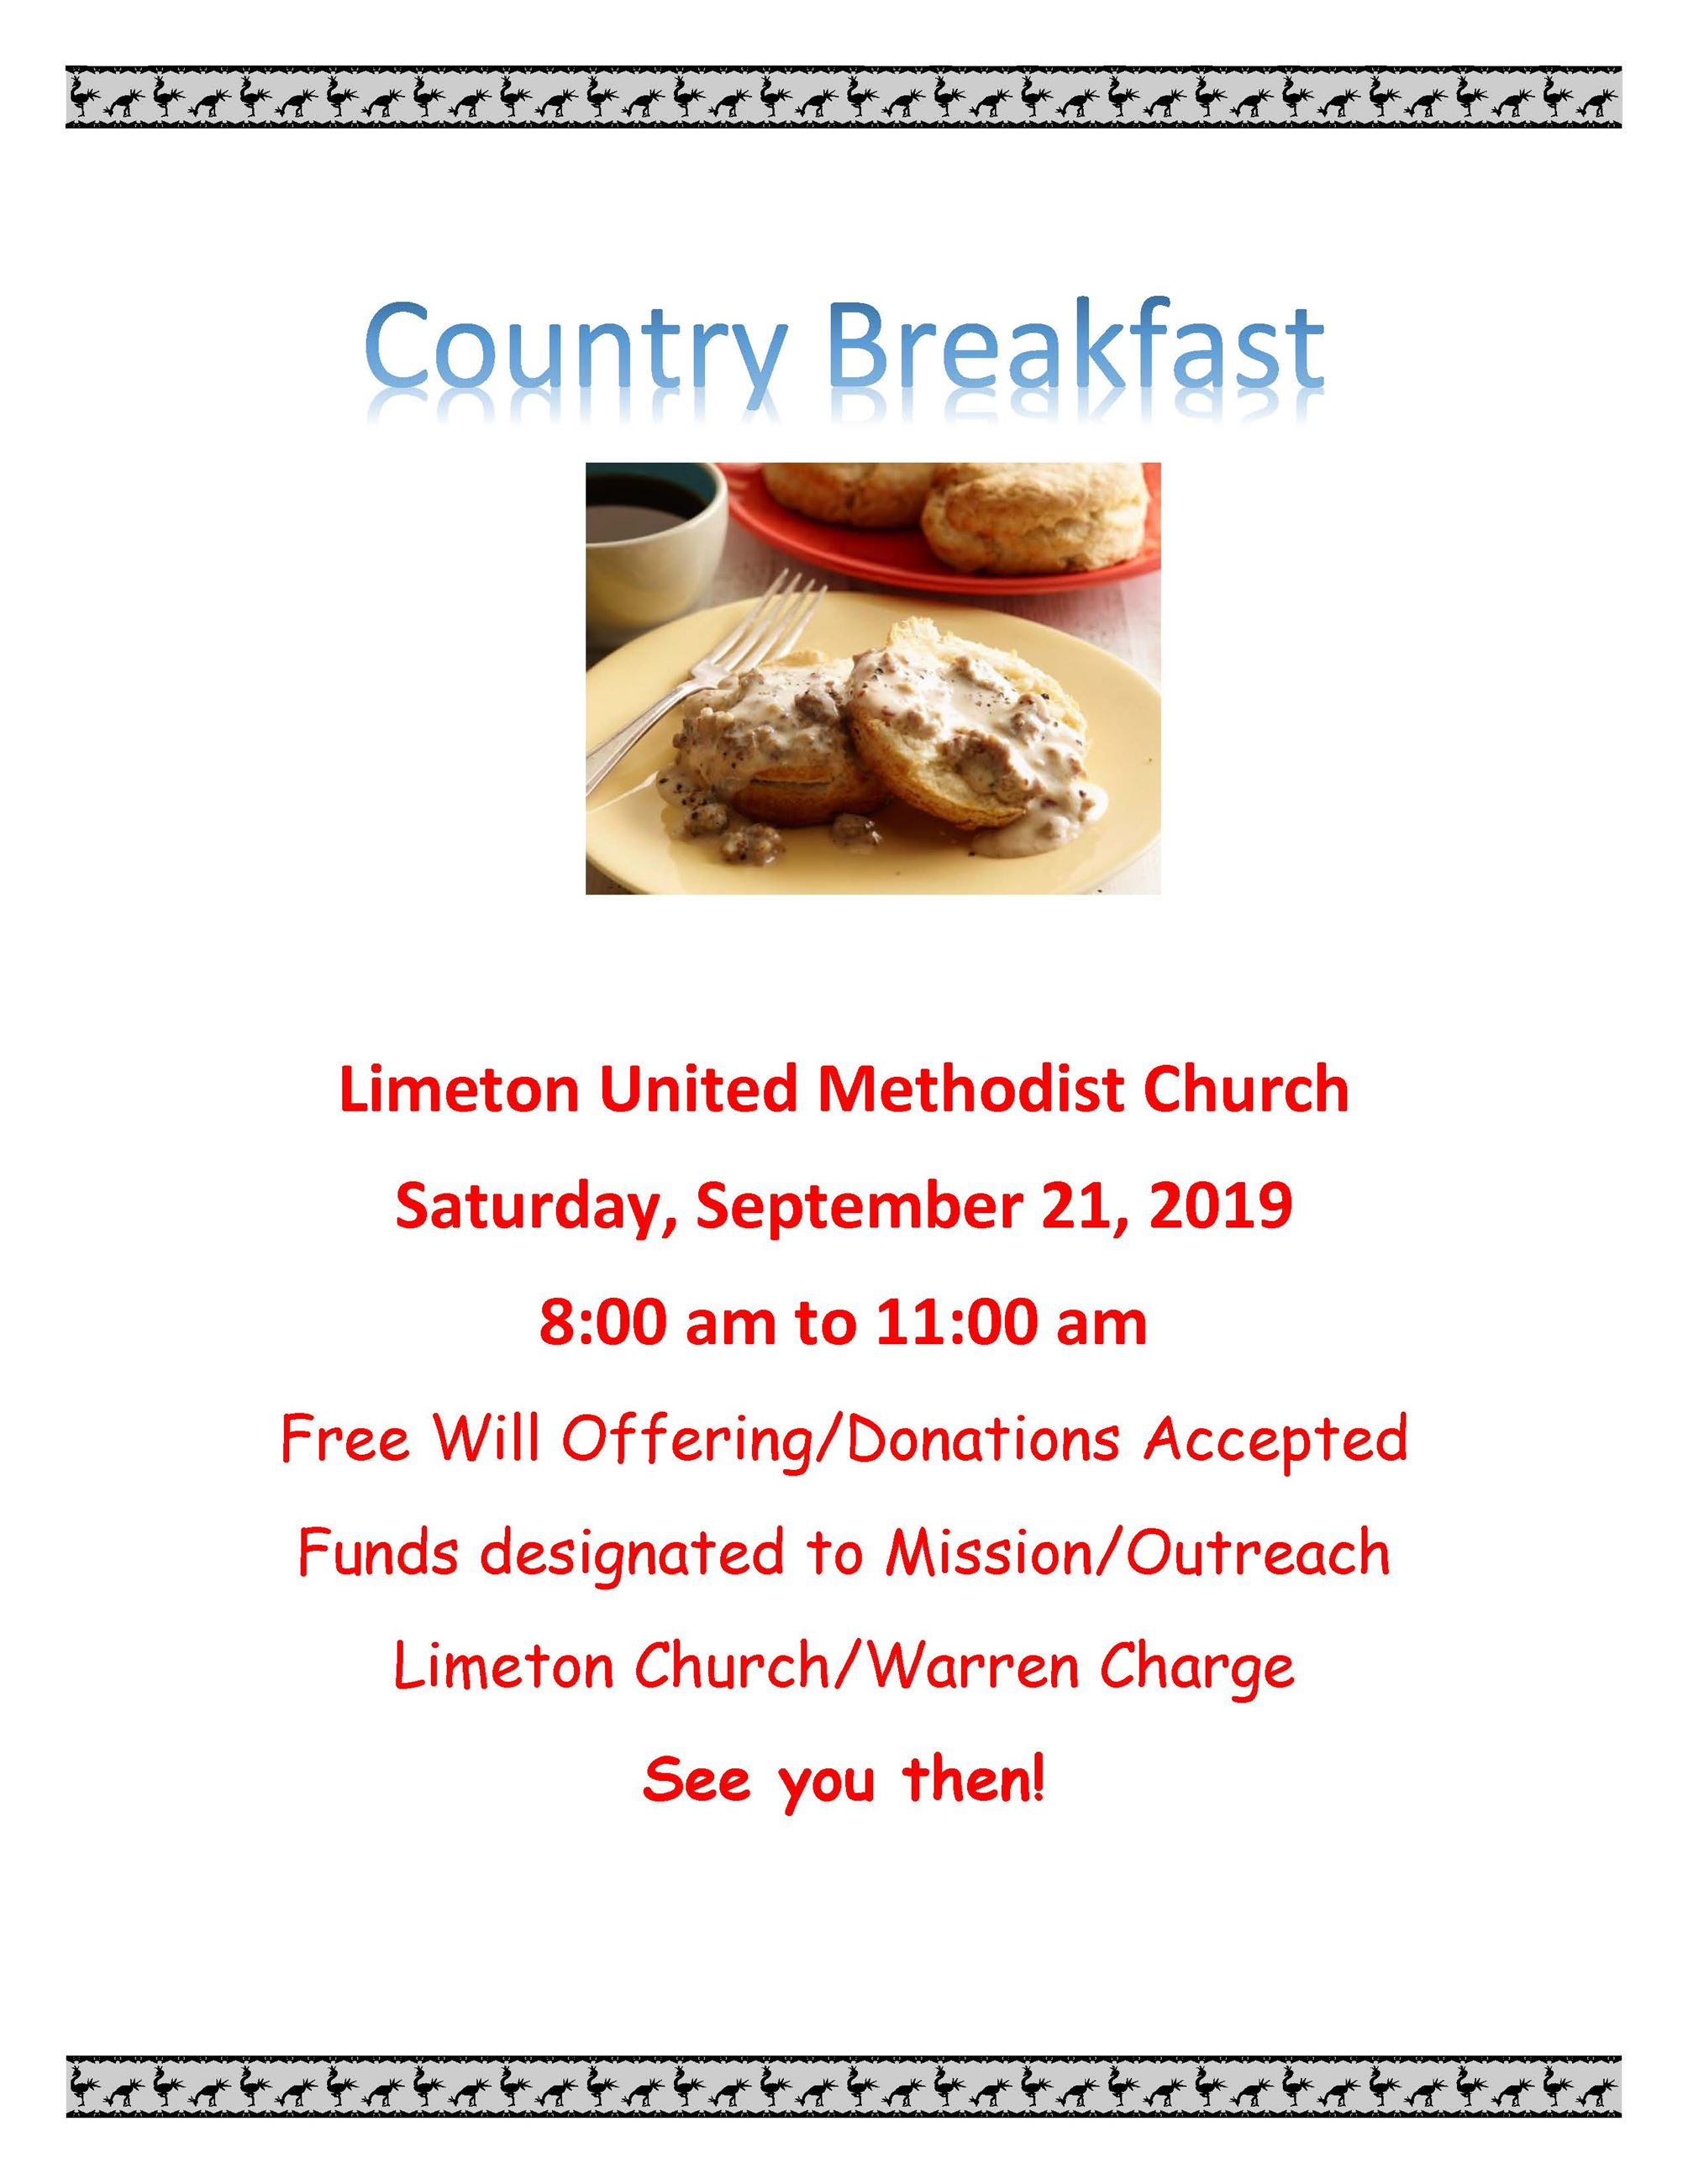 Country breakfast flyer 9 21 2019_Page_1